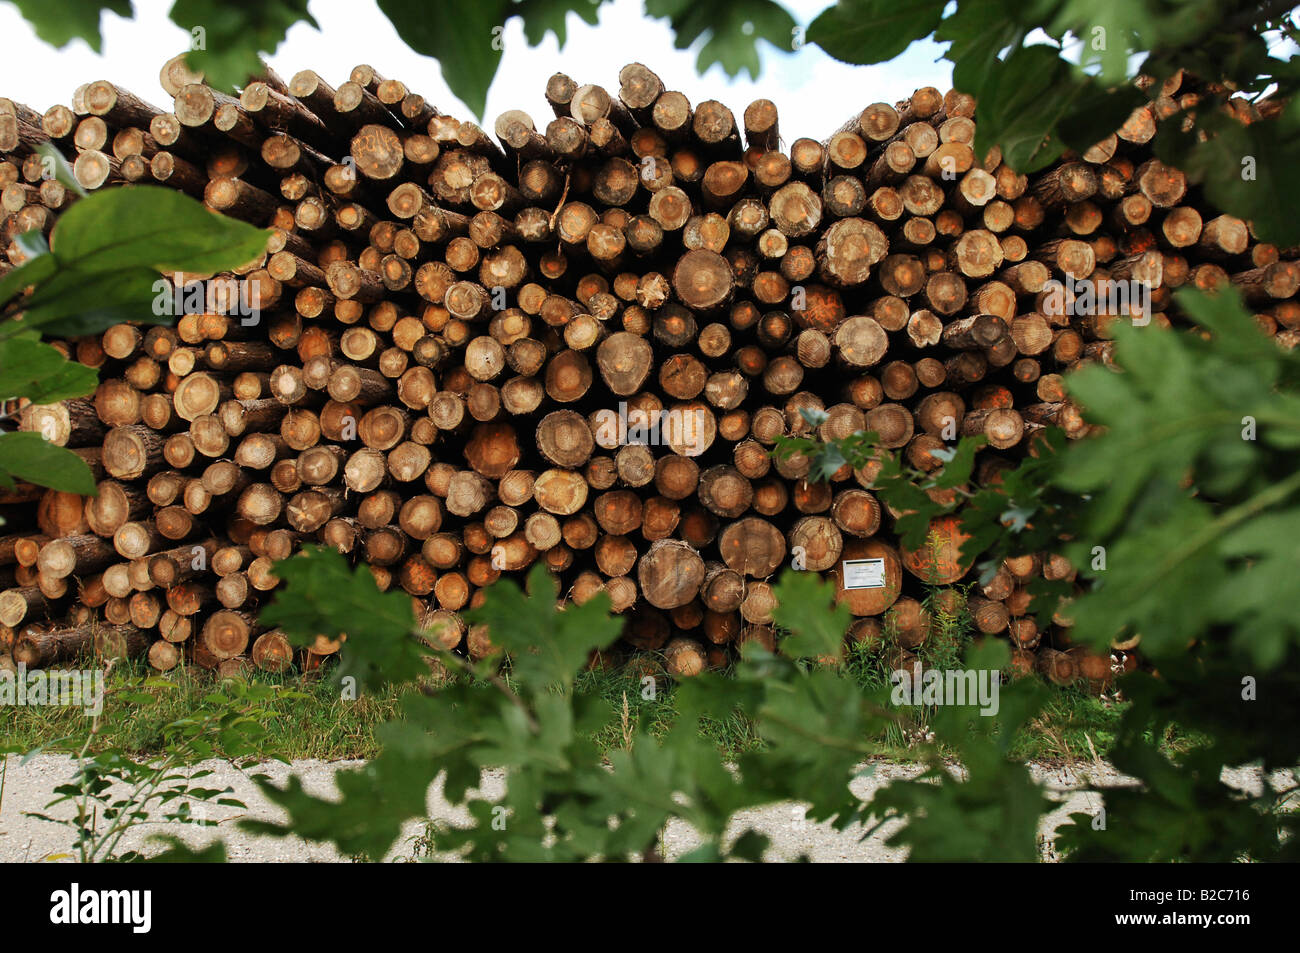 Stacked wood framed by leaves - Stock Image